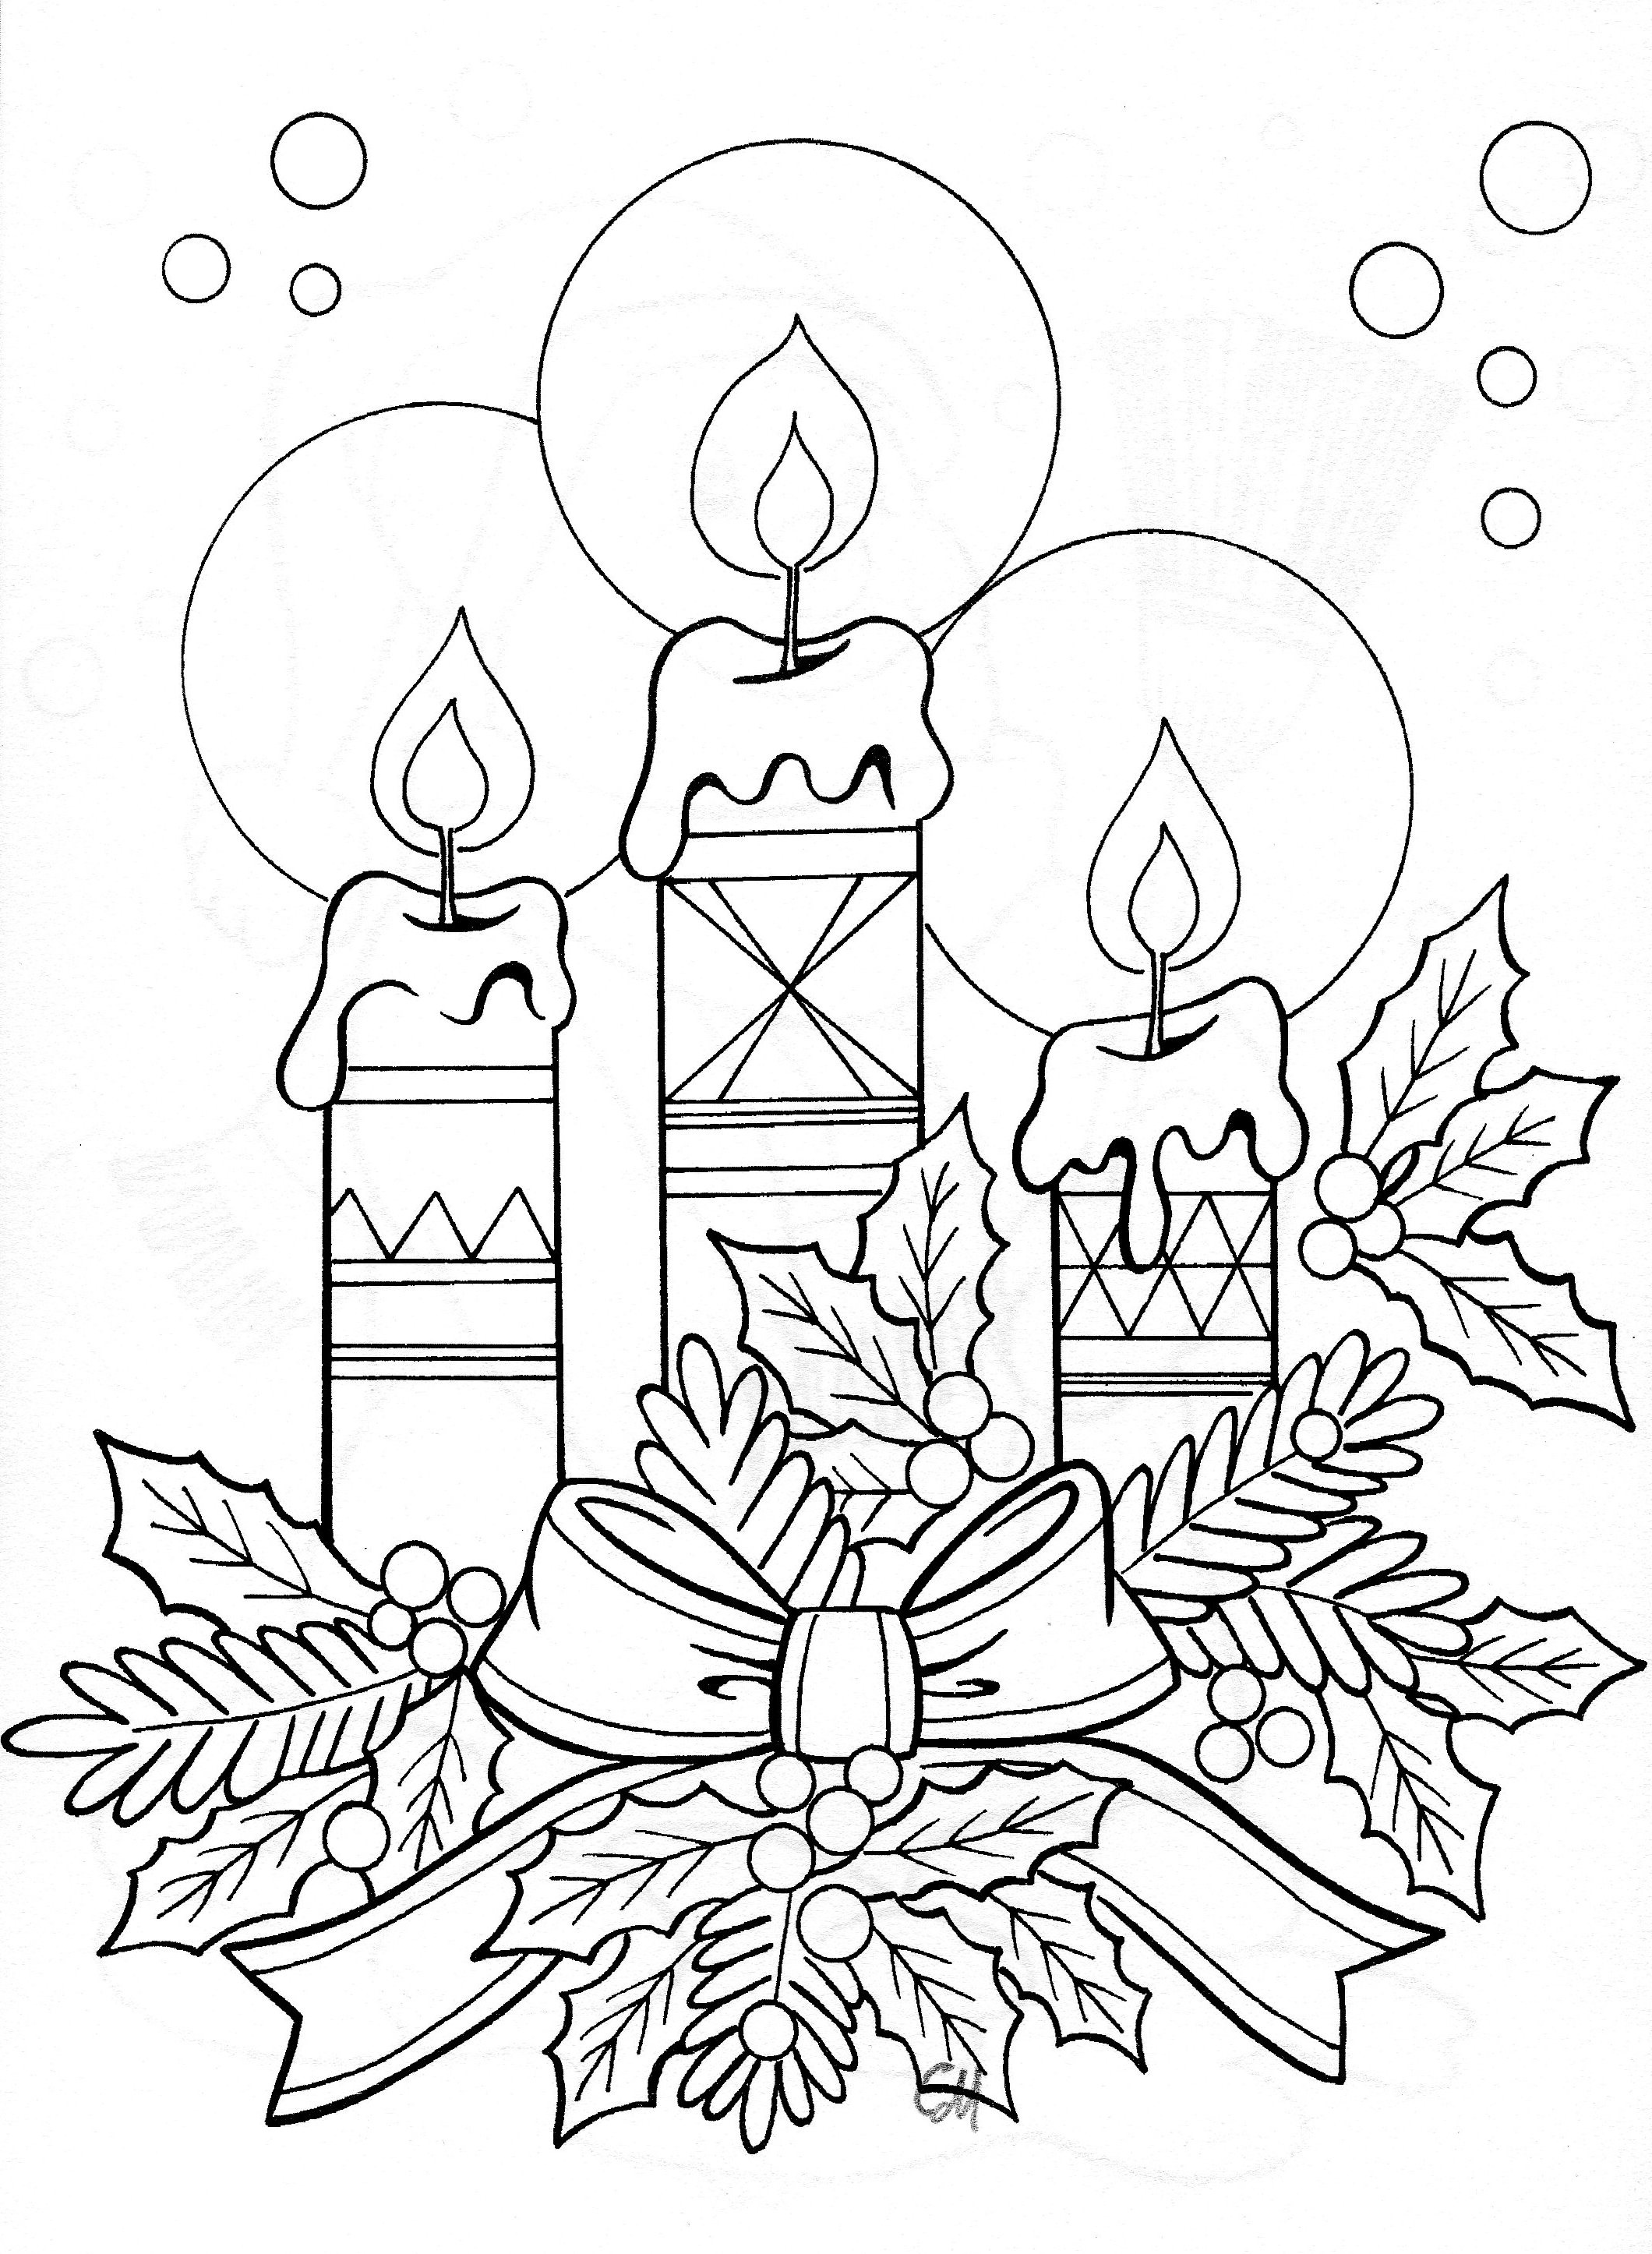 printable community coloring pages christmas village coloring pages at getcoloringscom printable coloring pages community